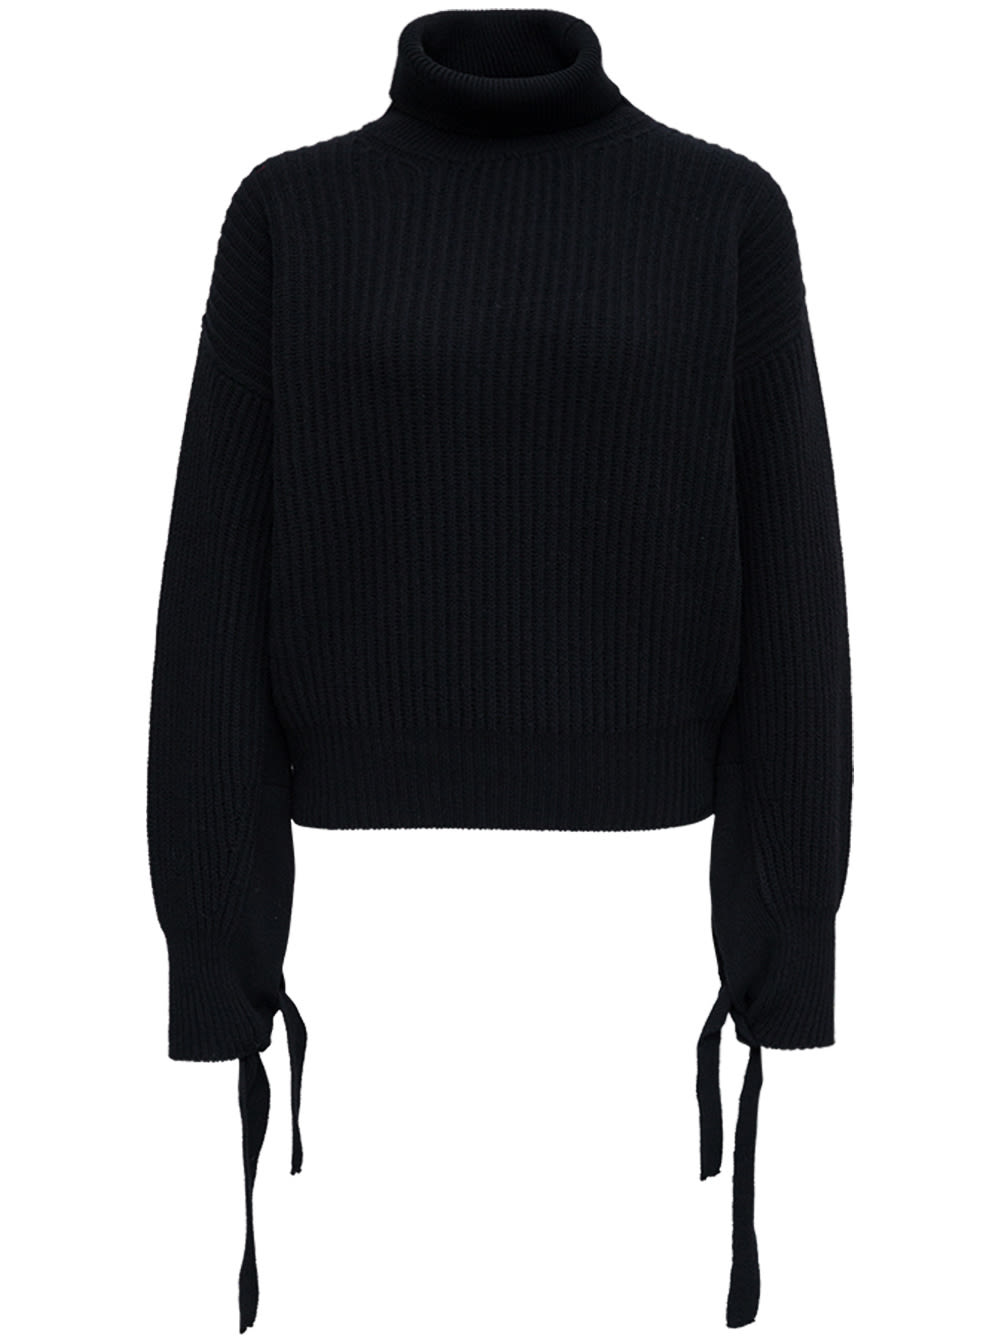 Black Wool Sweater With Bows